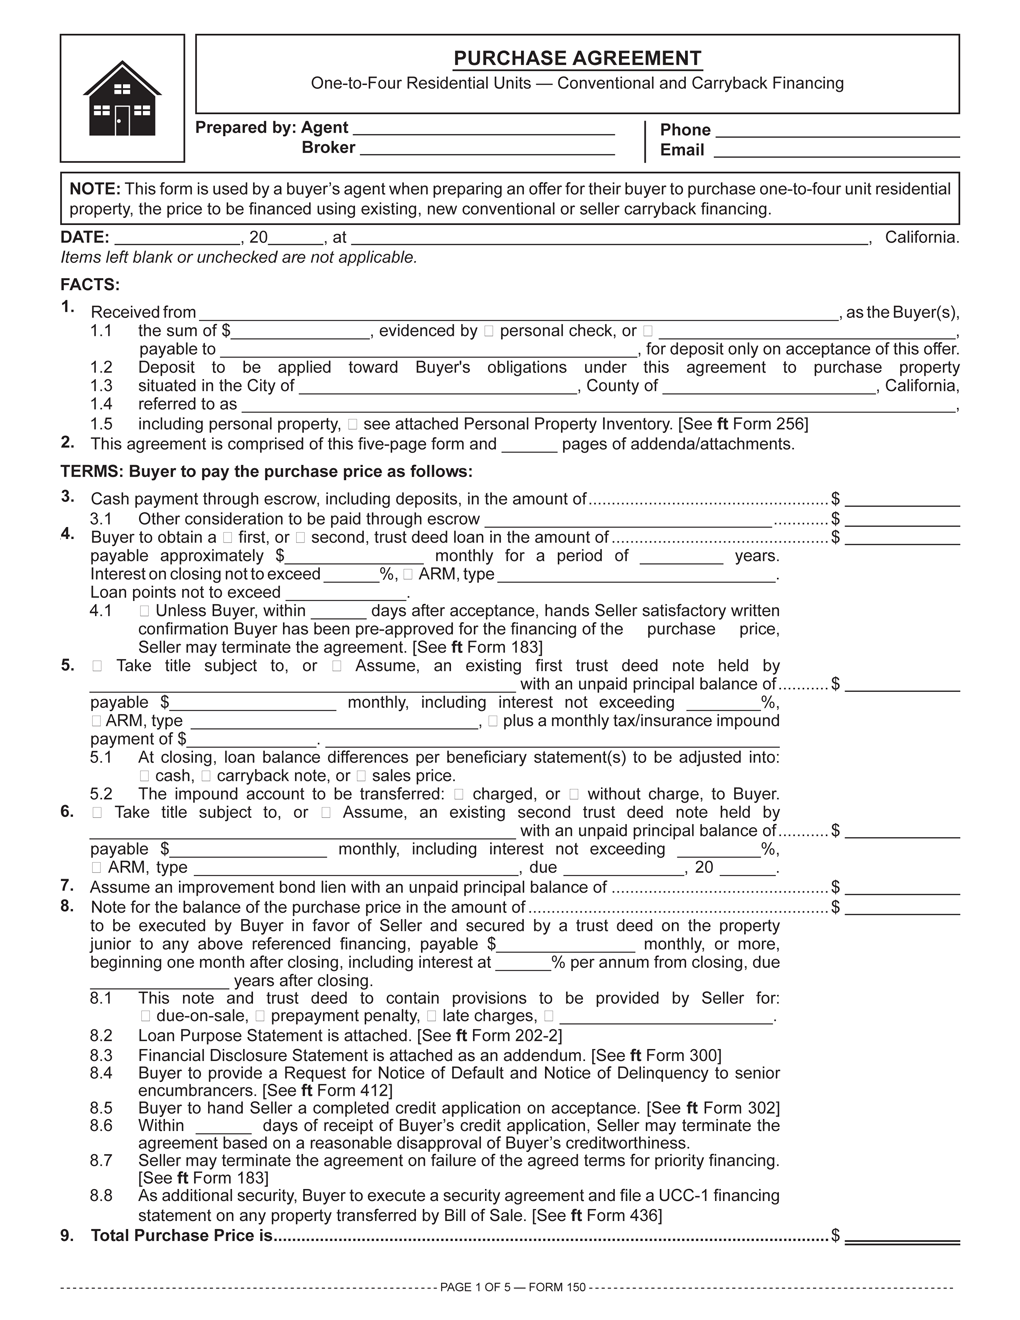 Transfer pricing agreement template free service Escrow motors